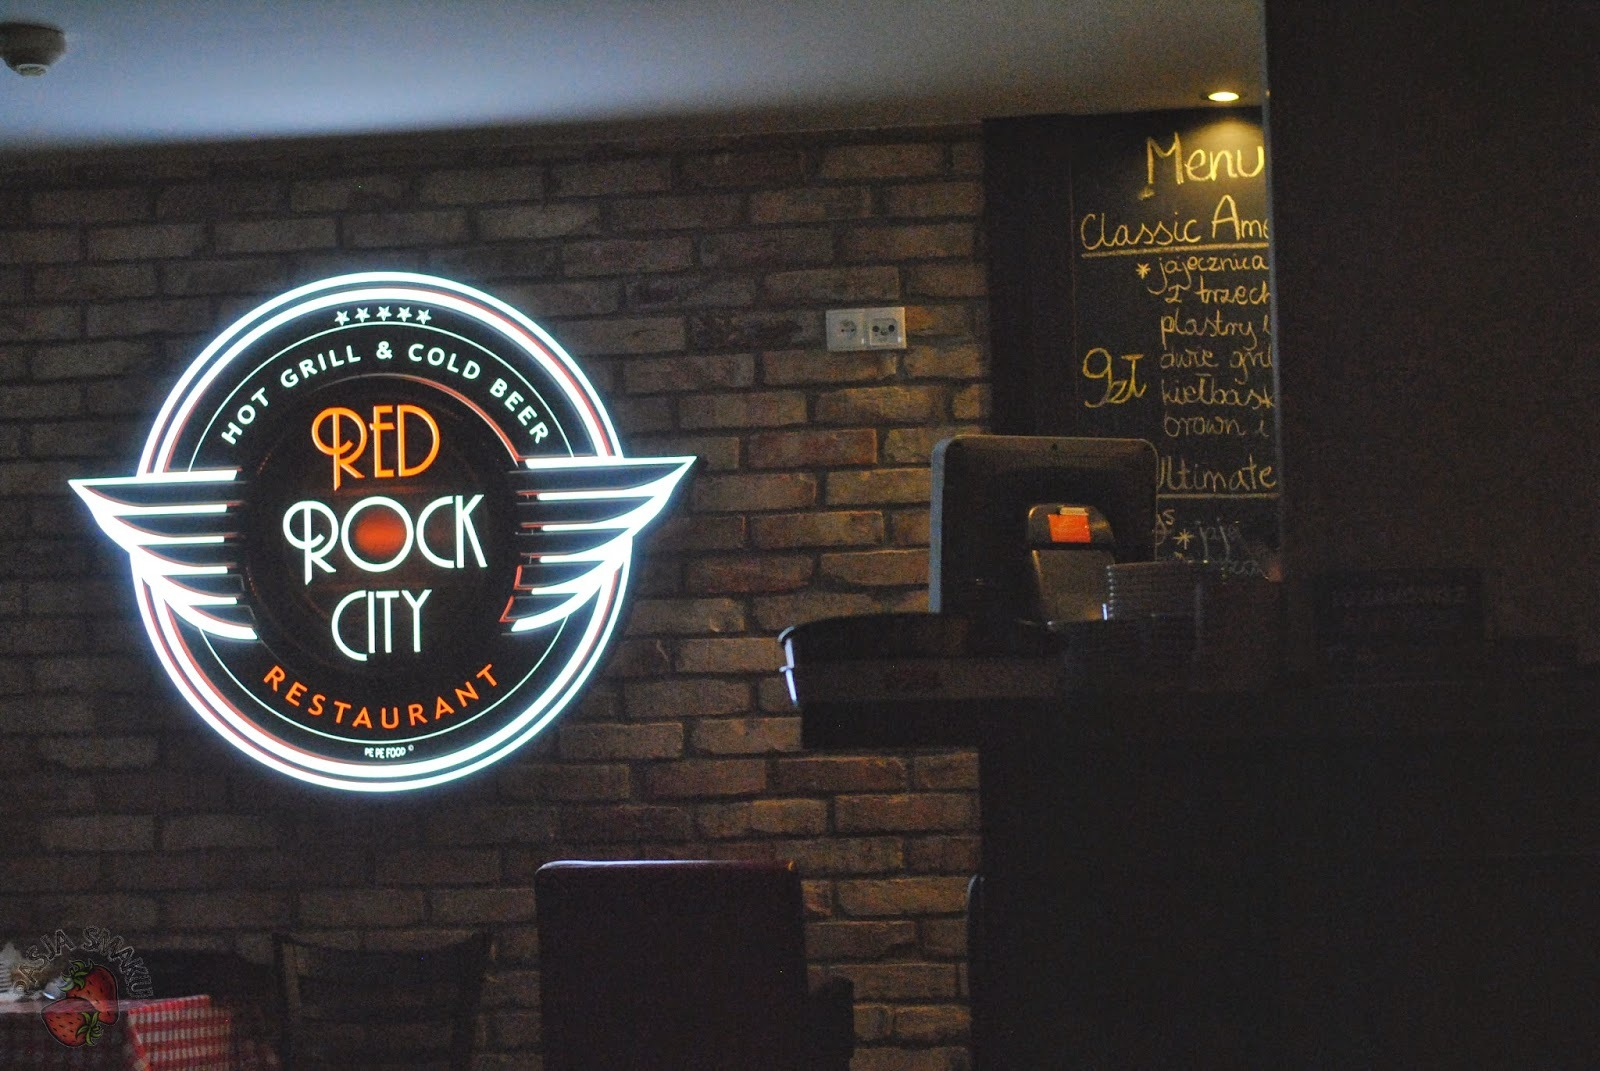 Red Rock City - opinia